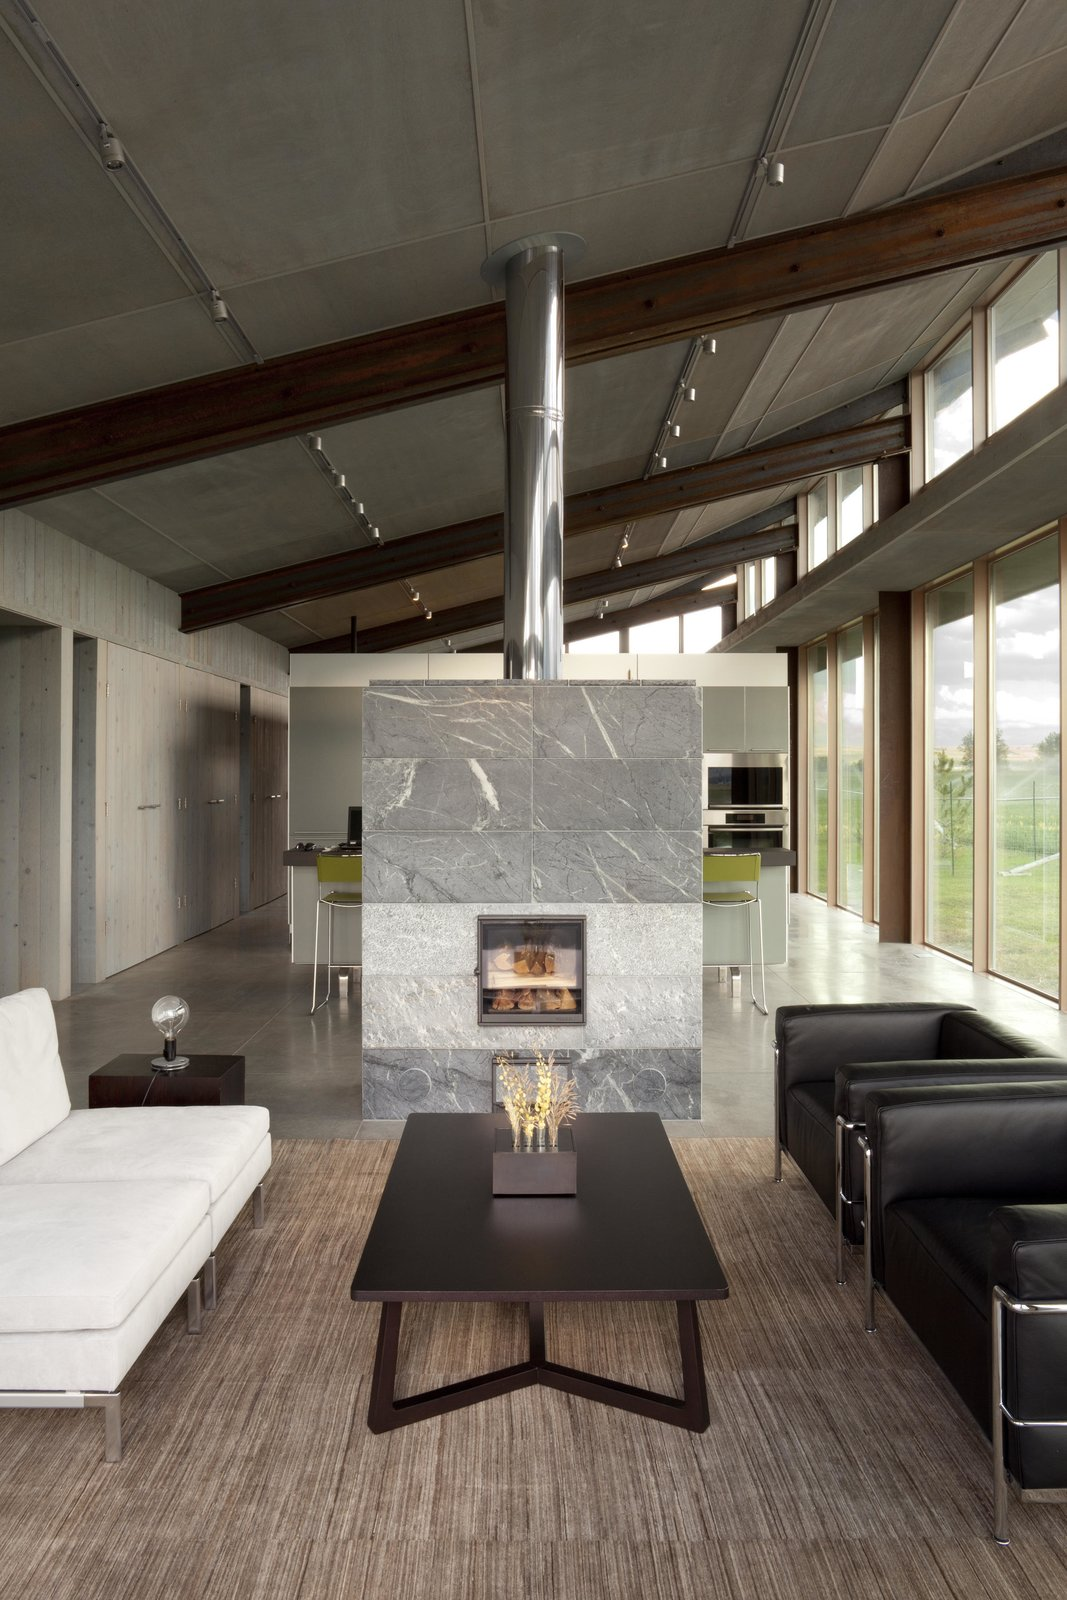 Glass Farmhouse | Olson Kundig Tagged: Living Room, Standard Layout Fireplace, Gas Burning Fireplace, Concrete Floor, Sofa, Coffee Tables, Track Lighting, and Chair.  Glass Farmhouse by Olson Kundig